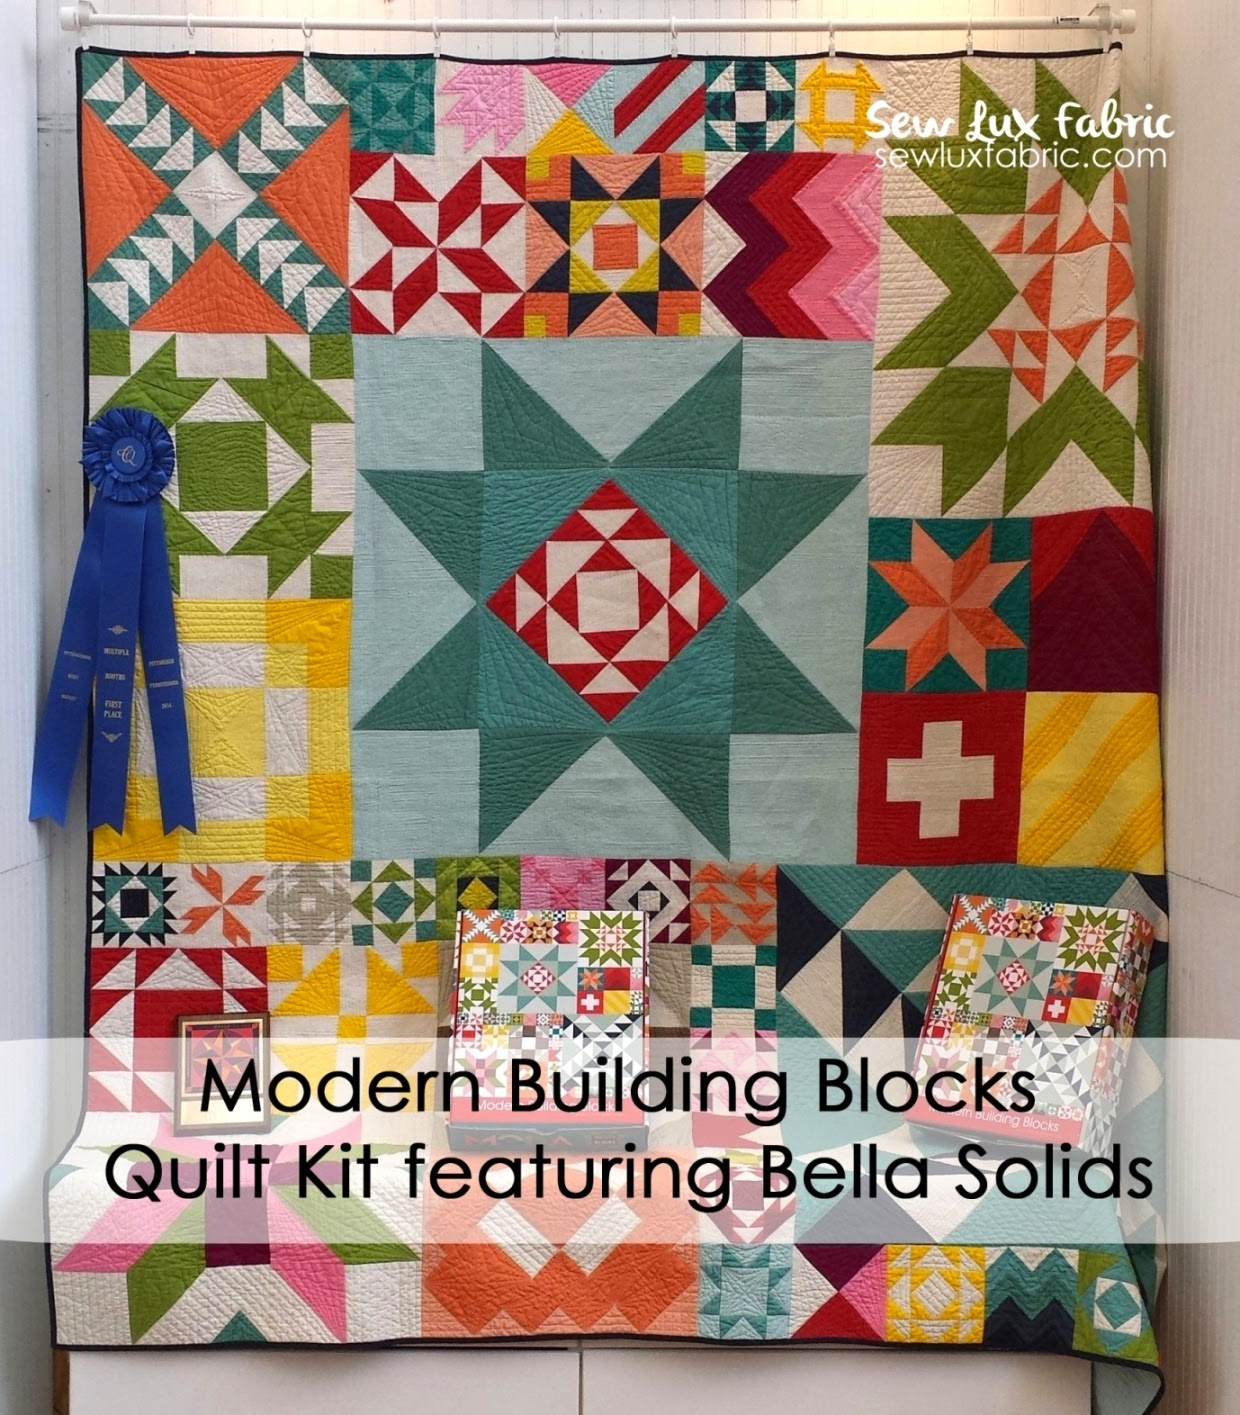 Sew lux fabric blog modern building blocks patterns for Modern house quilt block